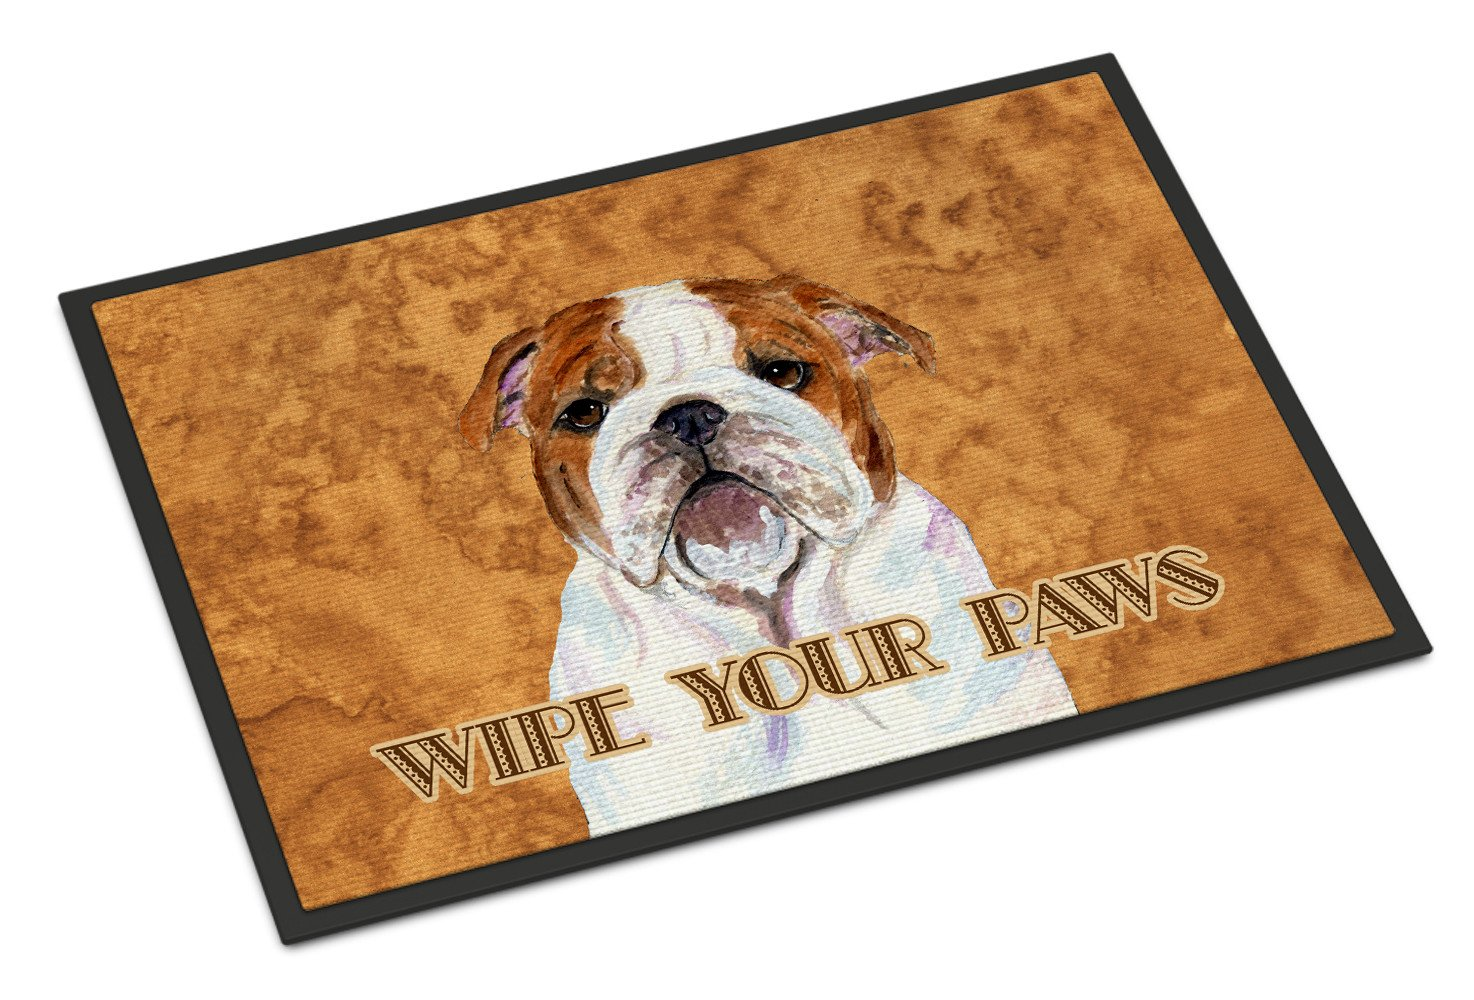 Bulldog English Wipe your Paws Indoor or Outdoor Mat 18x27 SS4896MAT - the-store.com